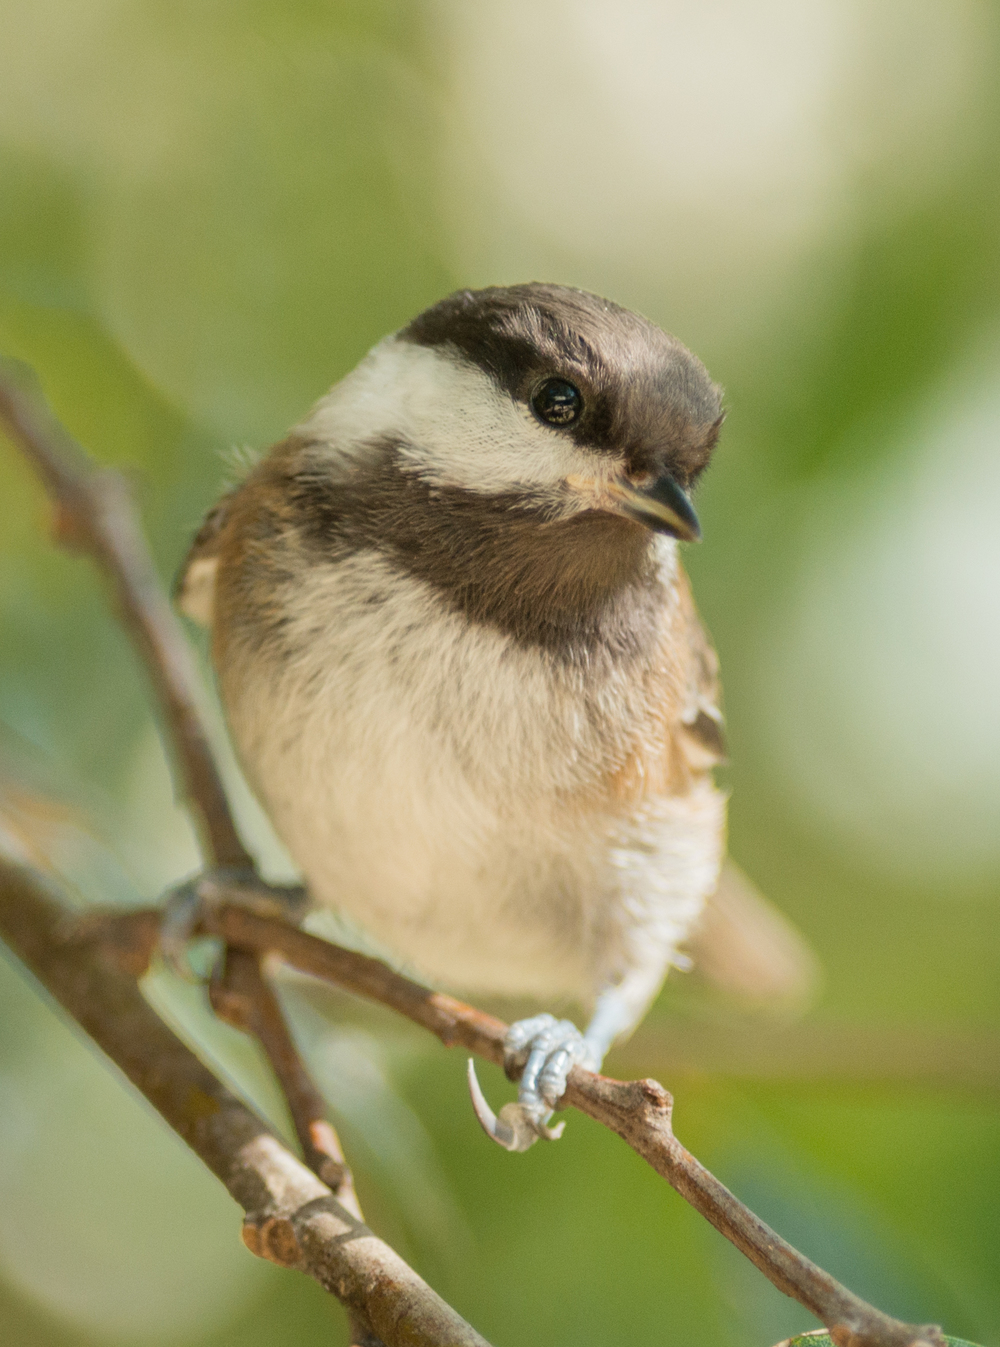 Chestnut-backed Chickadee (Poecile rufescens)  EQ: D800 300mm f/2.8    Taken: 6-23-15 17:17 Sunny in Shade  Setting: 450mm (@35mm), 1/500s, f/2.8, ISO400